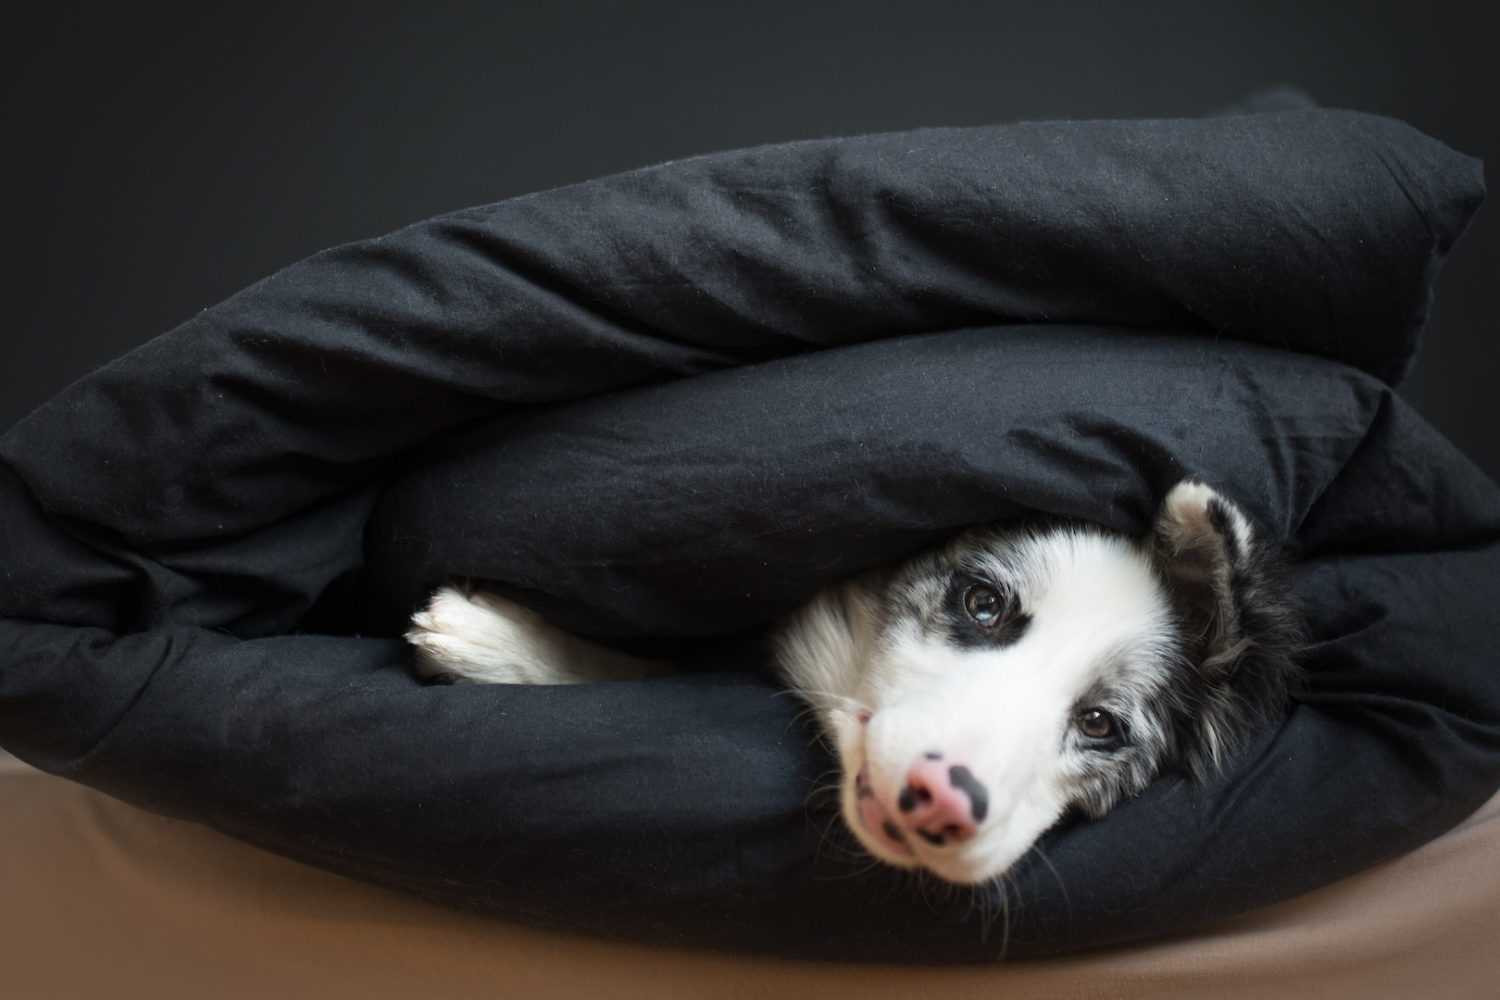 Dogs photography tips | How to photograph your dog